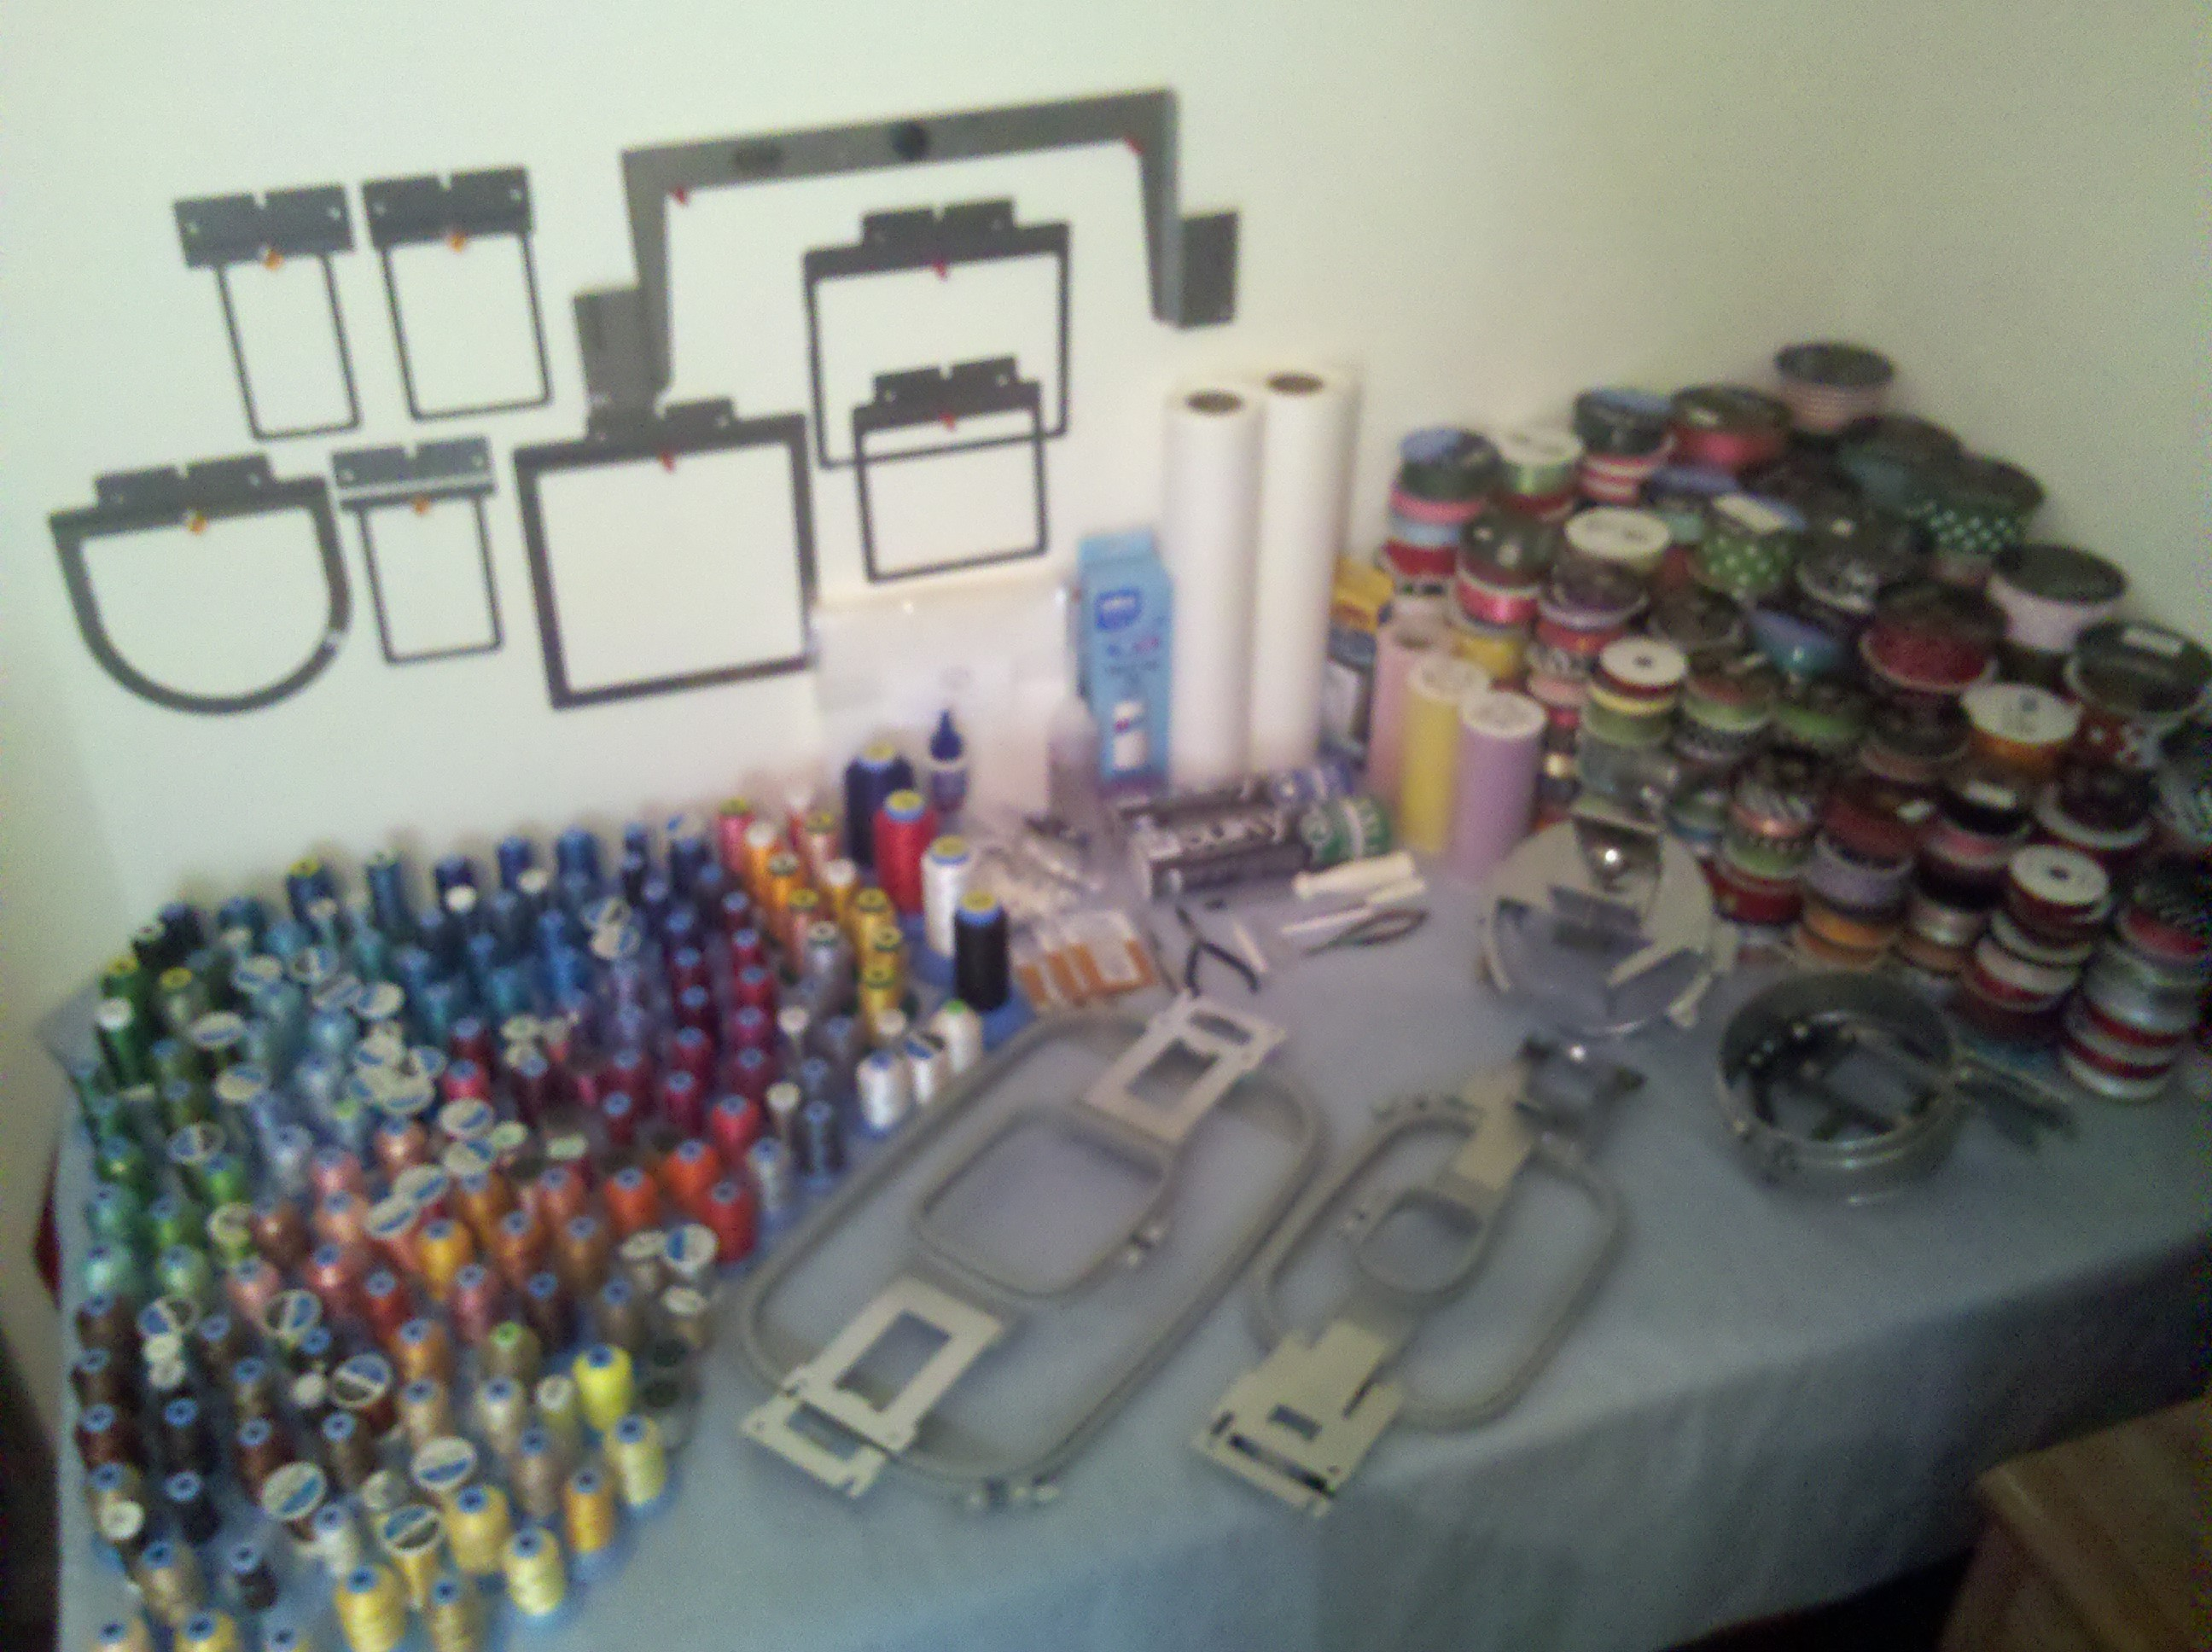 brothers embroidery machine for sale